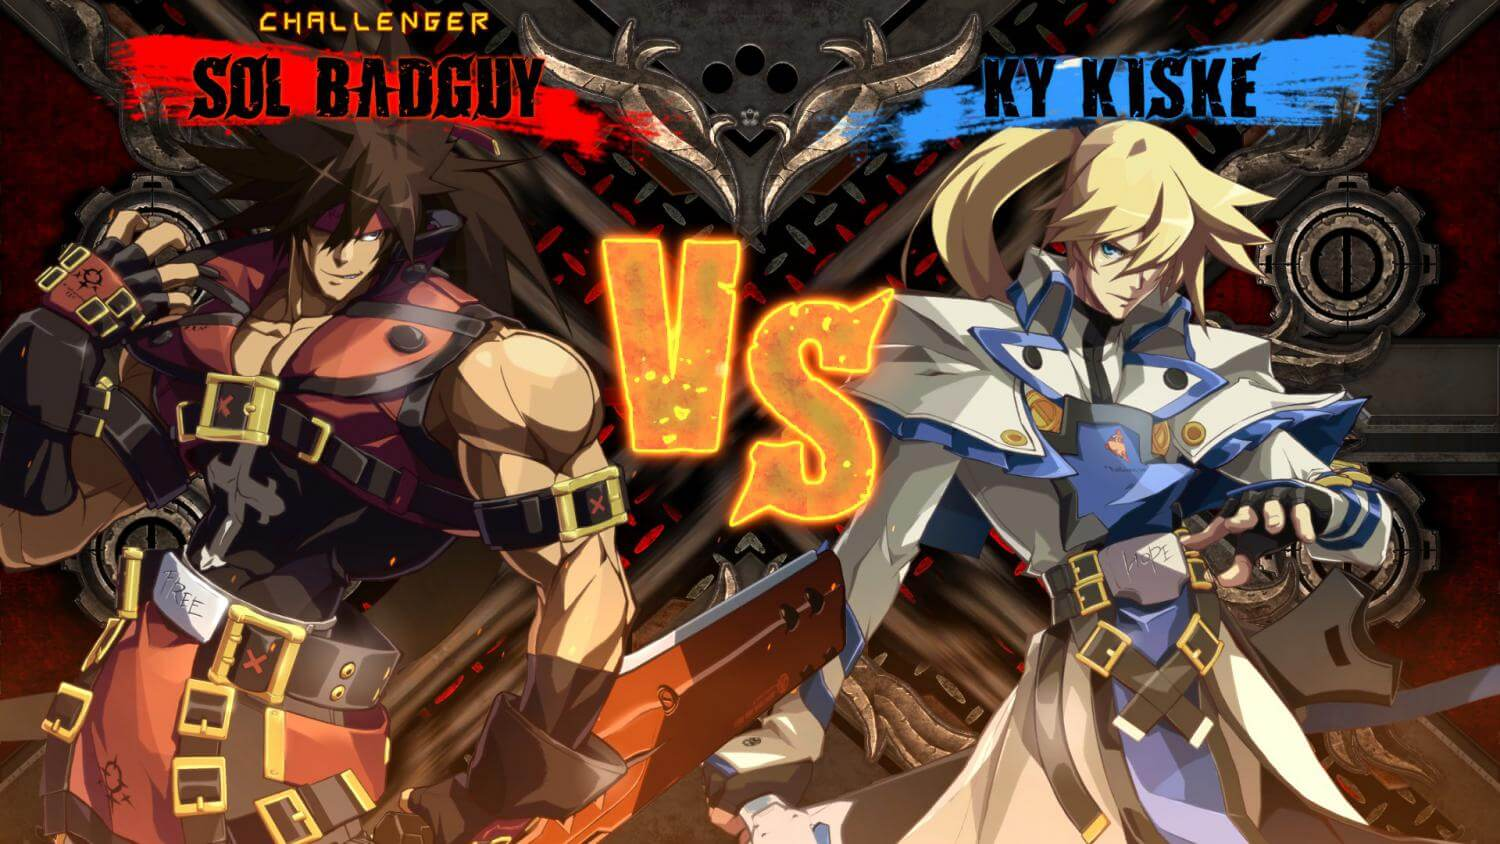 GUILTY GEAR Xrd -REVELATOR- Deluxe Edition